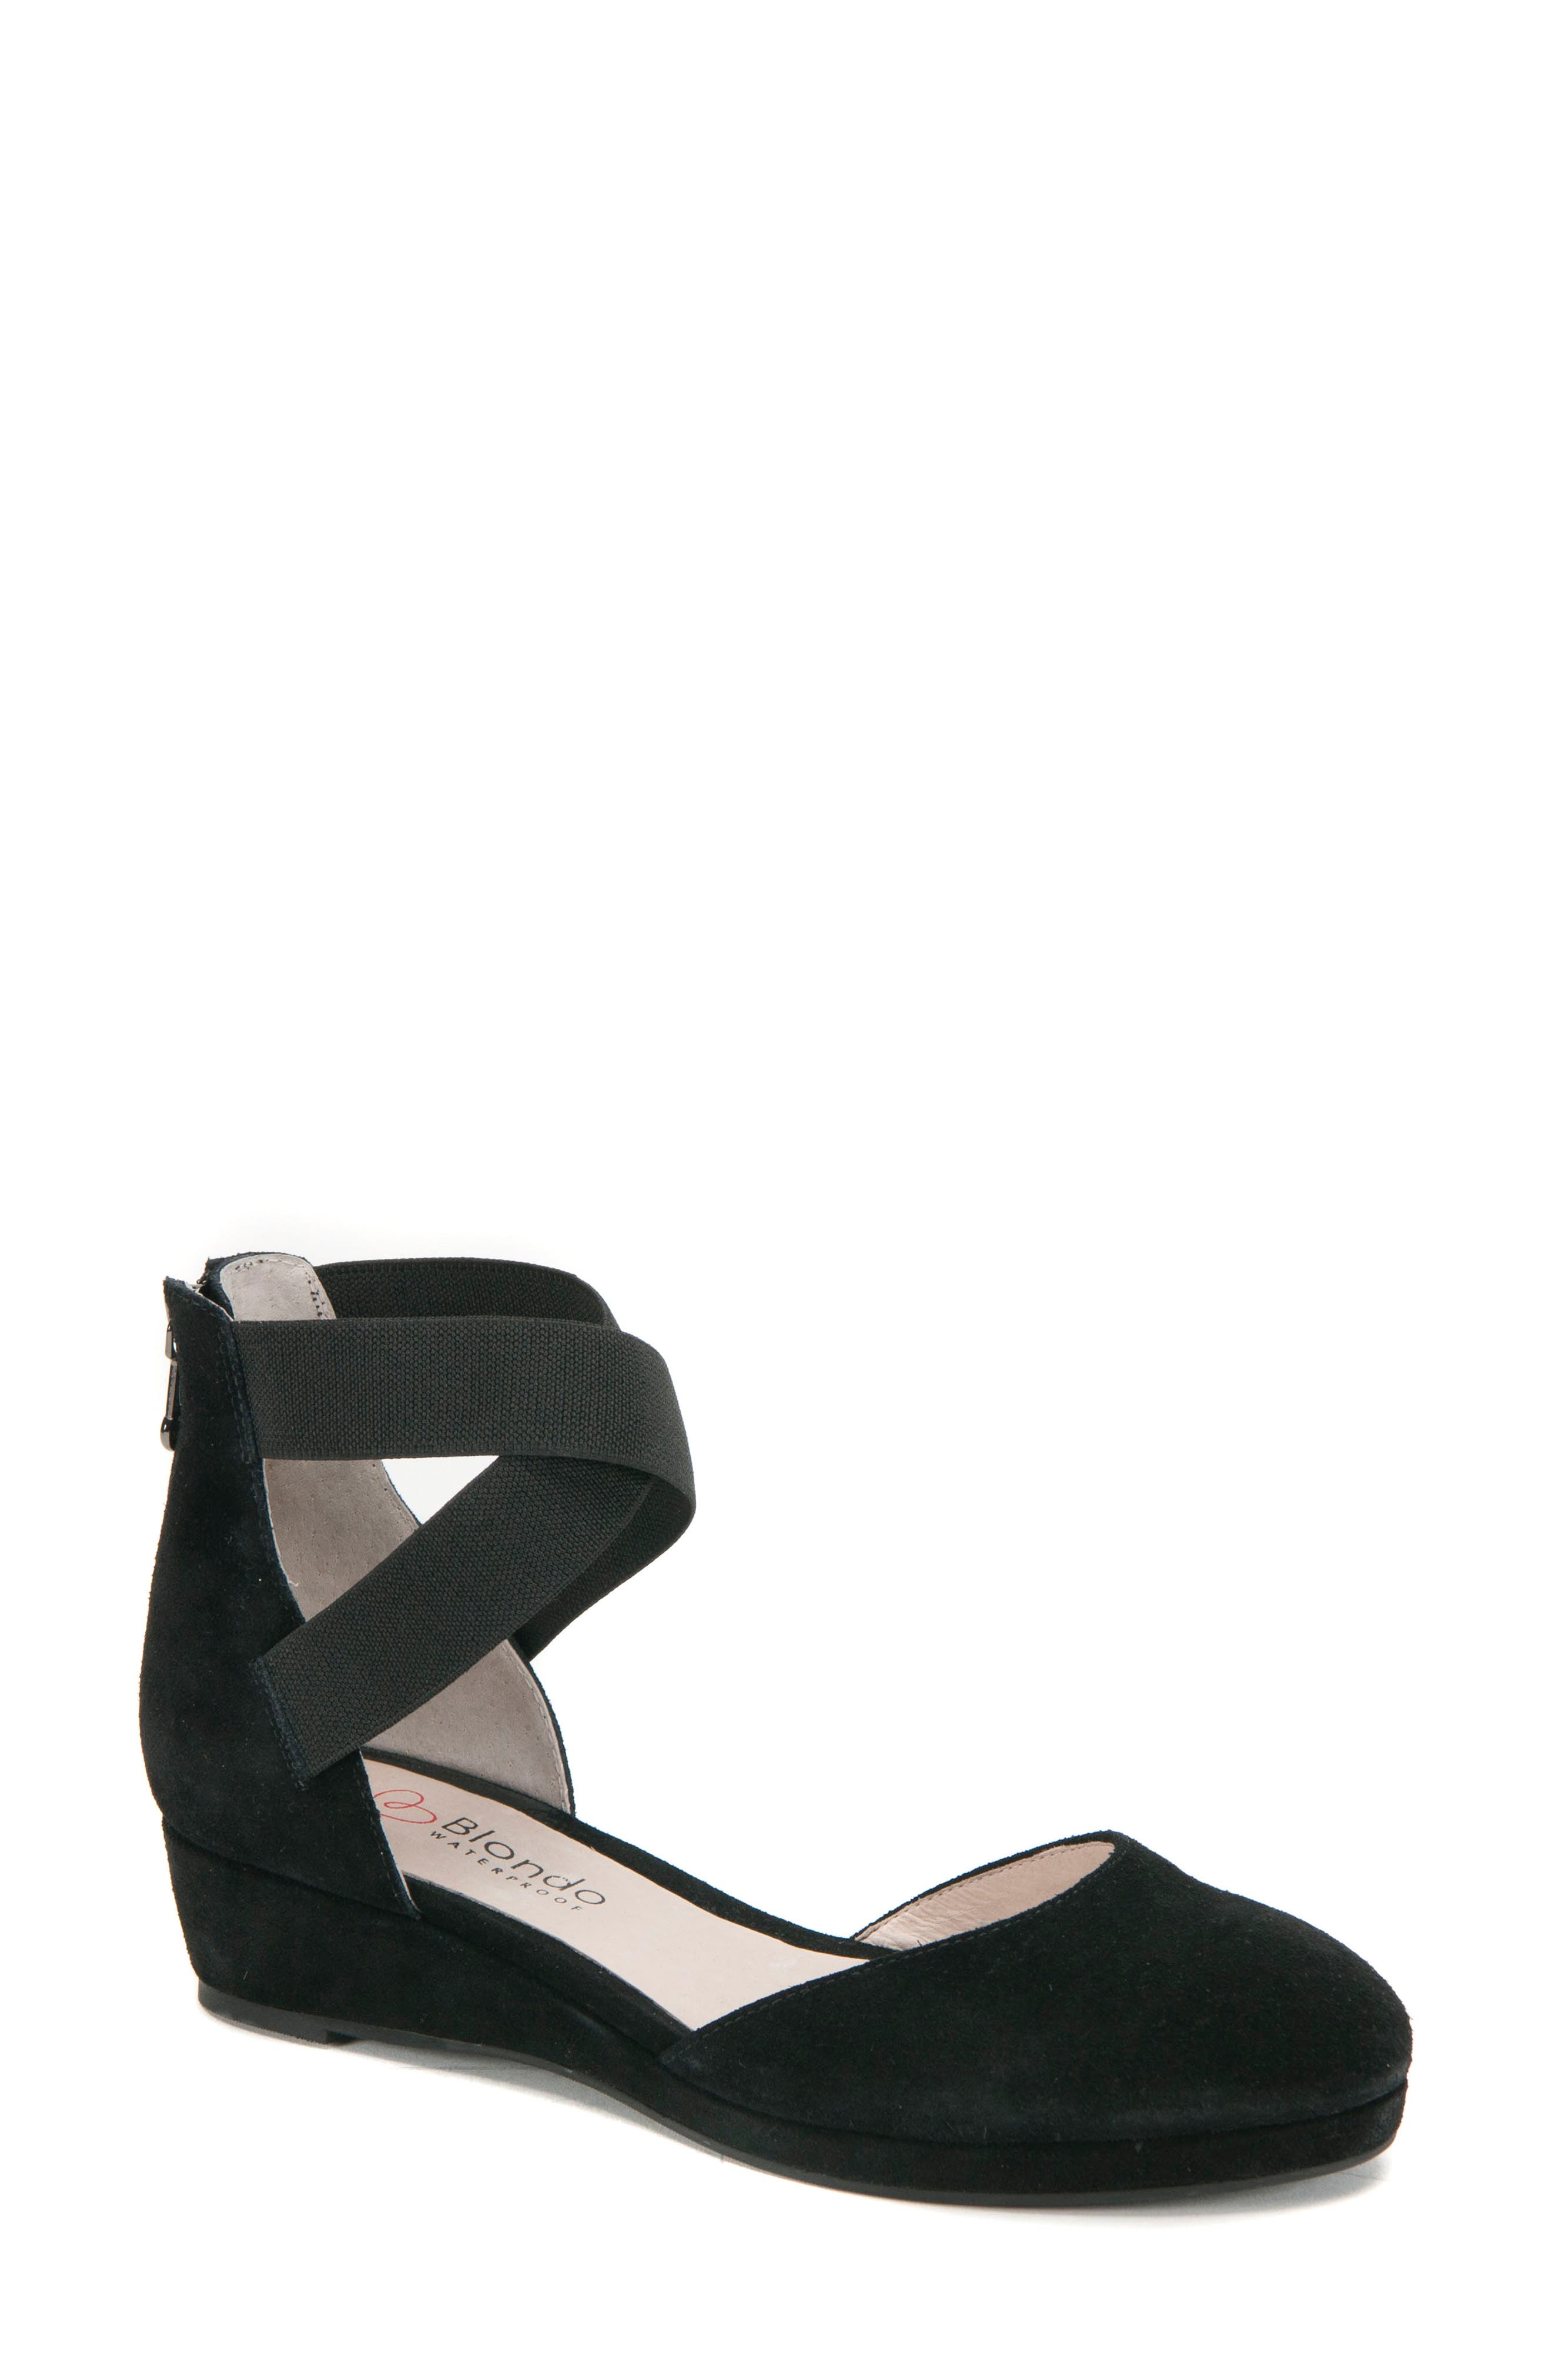 Blondo Cathy Waterproof Wedge Pump (Women)